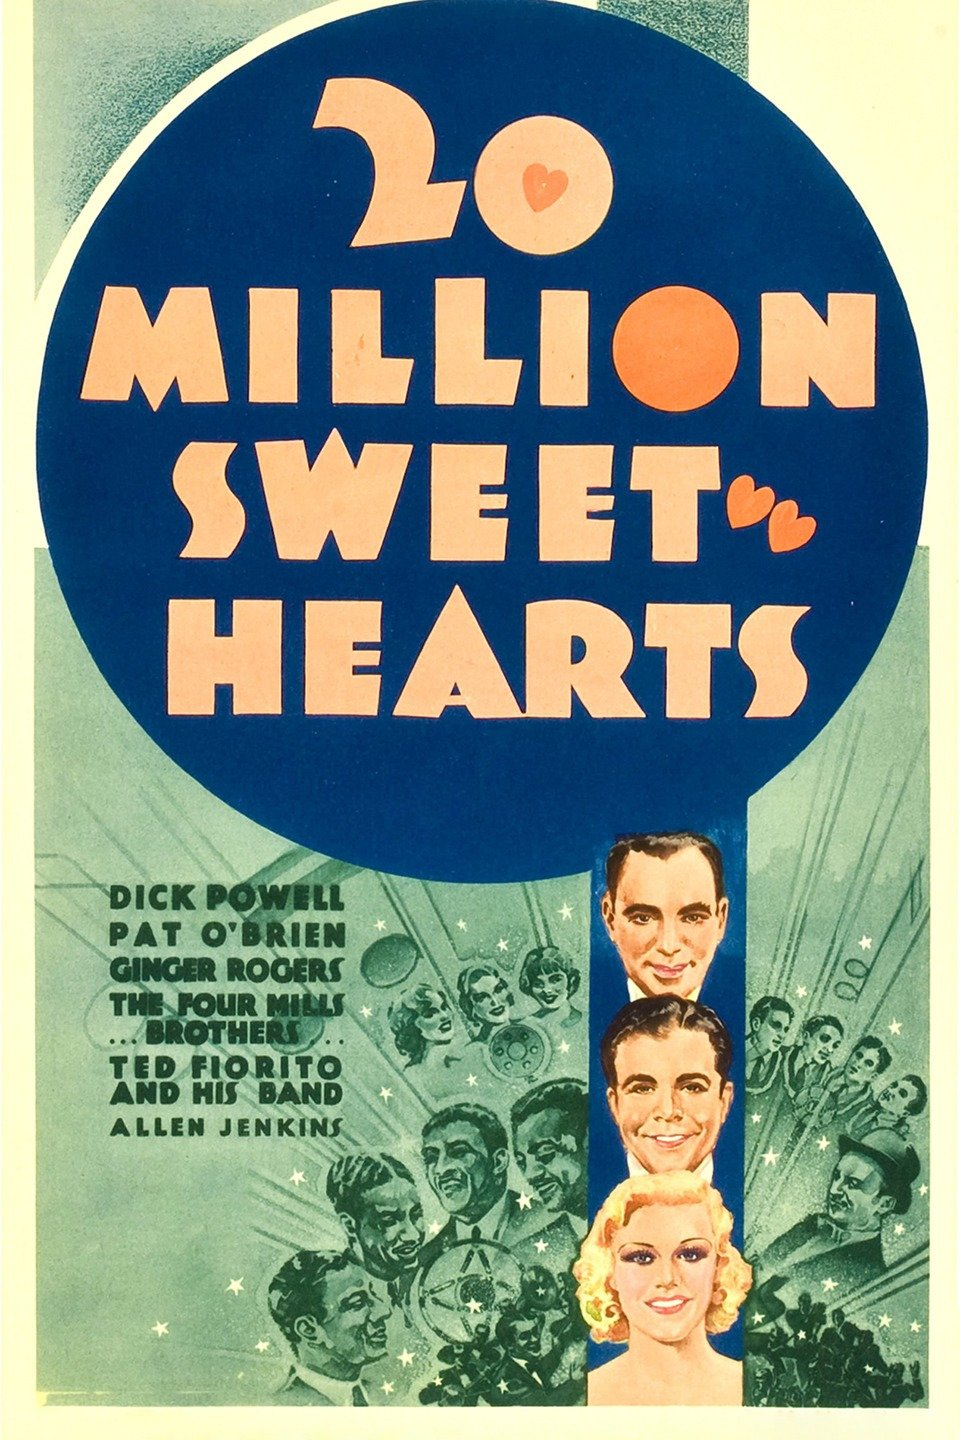 Ginger Rogers, Pat O'Brien, Allen Jenkins, Dick Powell, and The Mills Brothers in Twenty Million Sweethearts (1934)